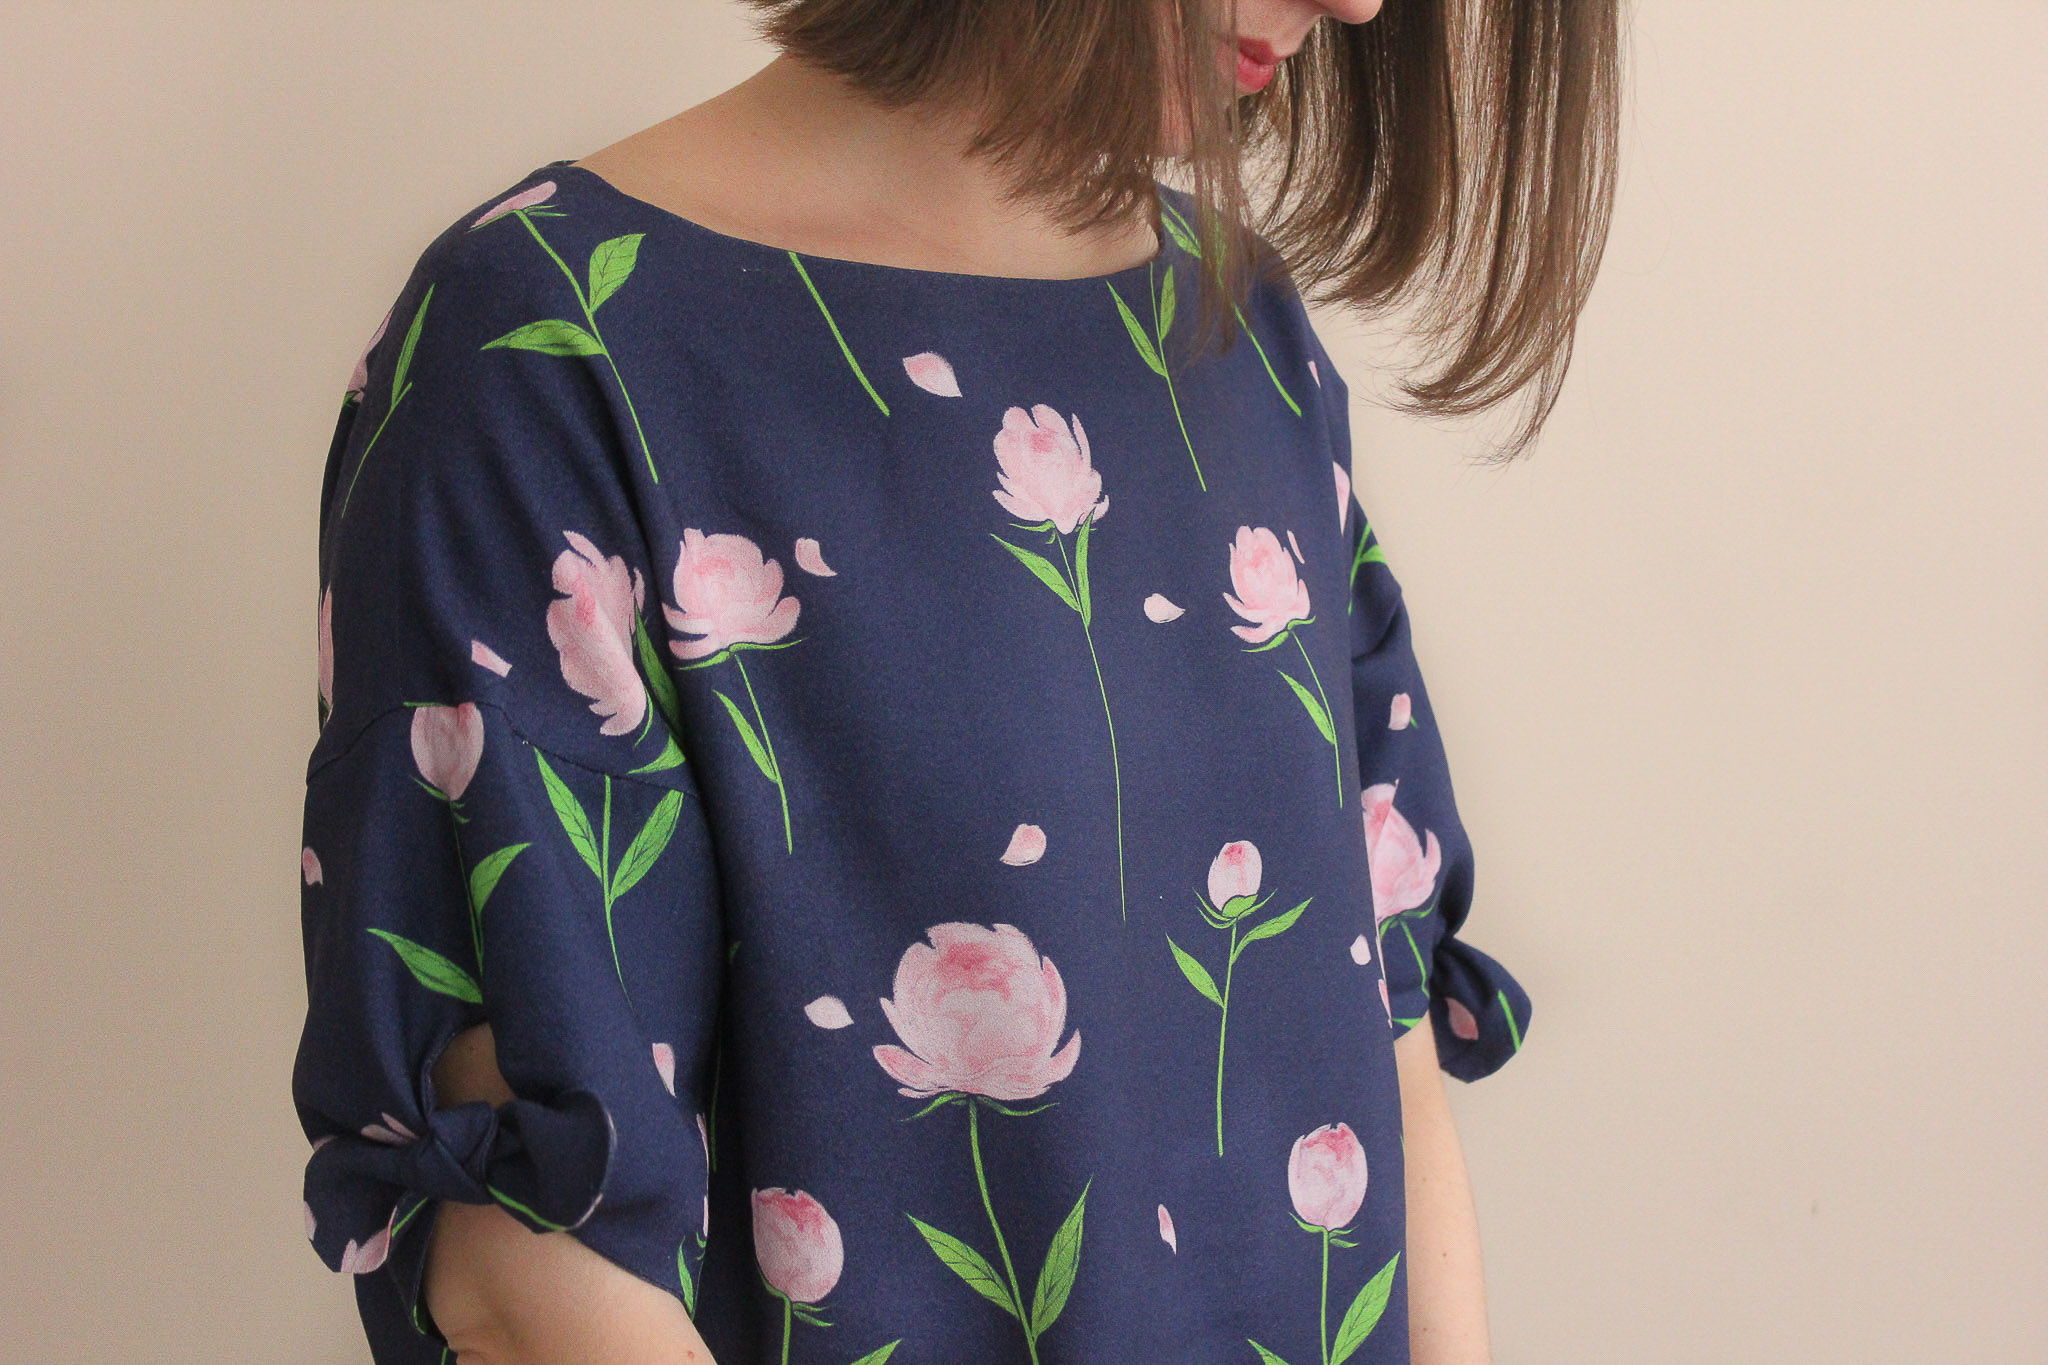 Tissu crêpe de viscose - Happy peony navy - Top Iris - Slow Sunday Paris - Lise Tailor